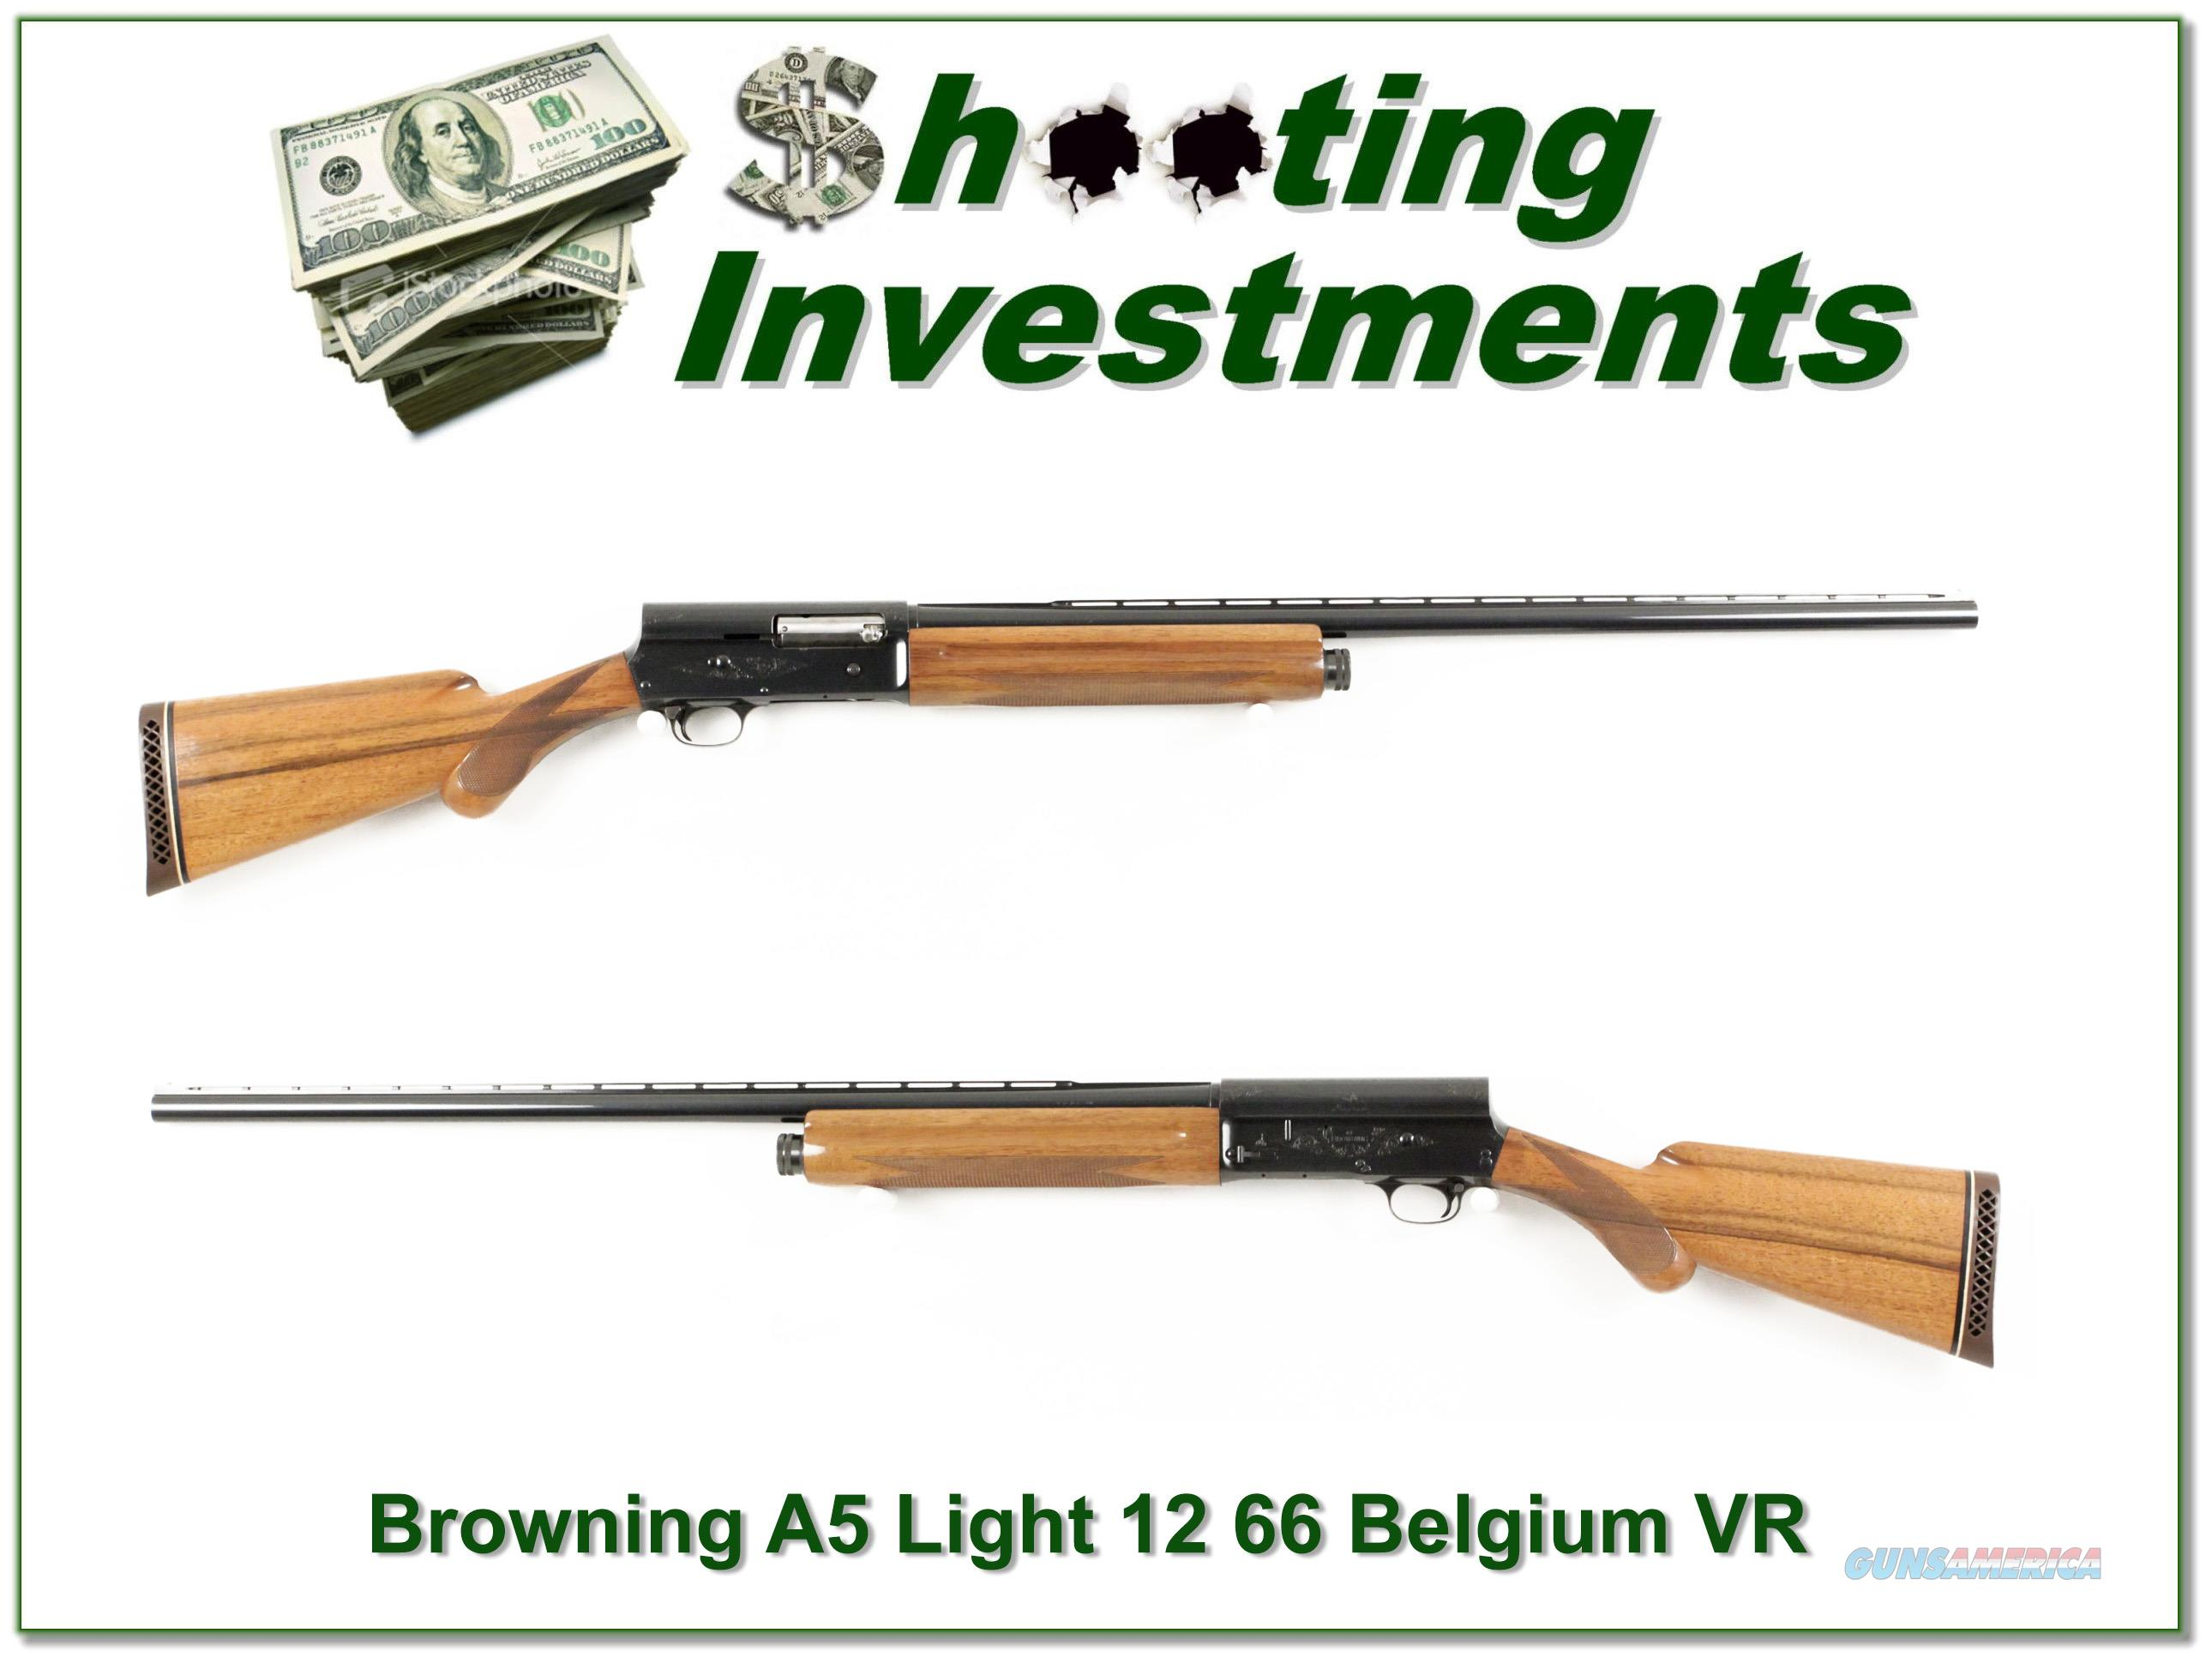 Browning A5 12 Magnum 66 Belgium VR Blond!  Guns > Shotguns > Browning Shotguns > Autoloaders > Hunting